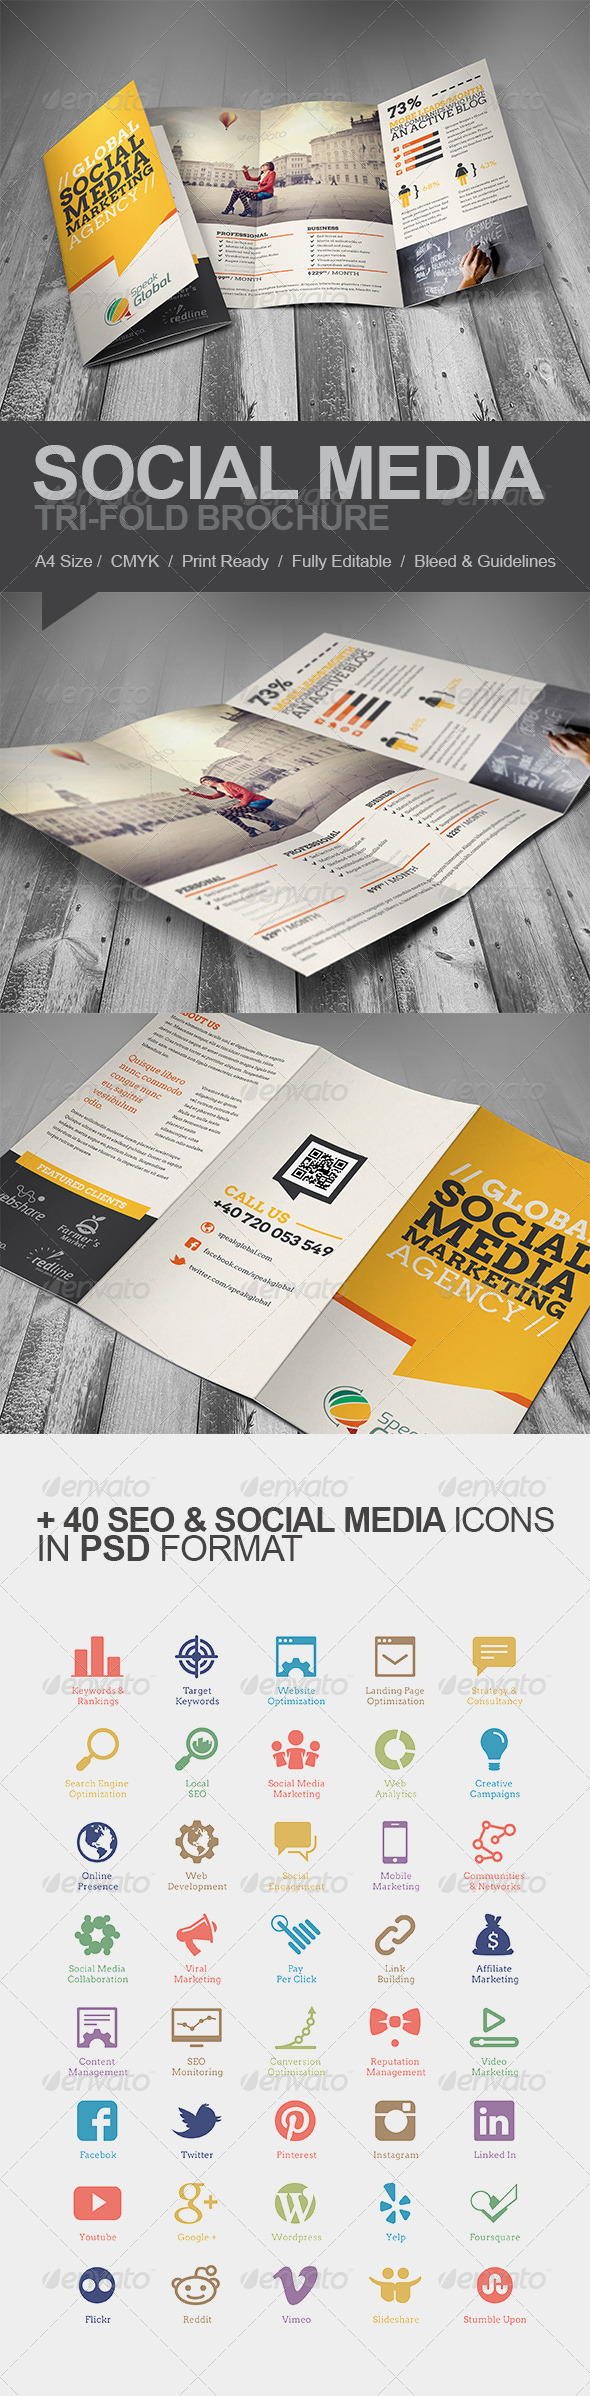 GraphicRiver Social Media Marketing Tri-fold Brochure 6105368